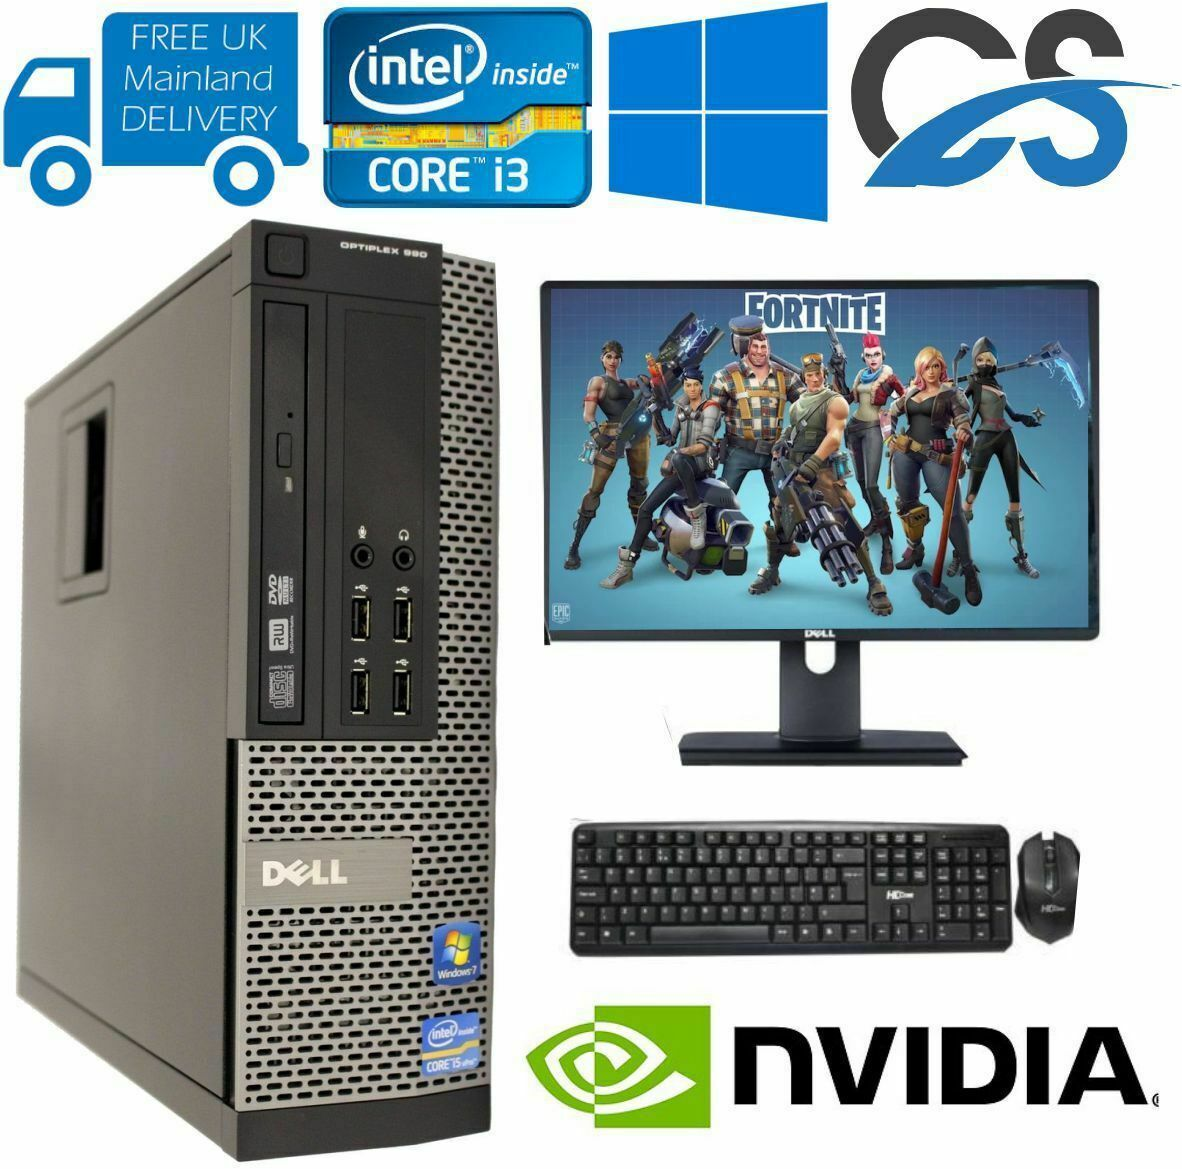 Computer Games - FAST GAMING DELL BUNDLE TOWER PC FULL SET COMPUTER SYSTEM INTEL i3 8GB RAM GT710